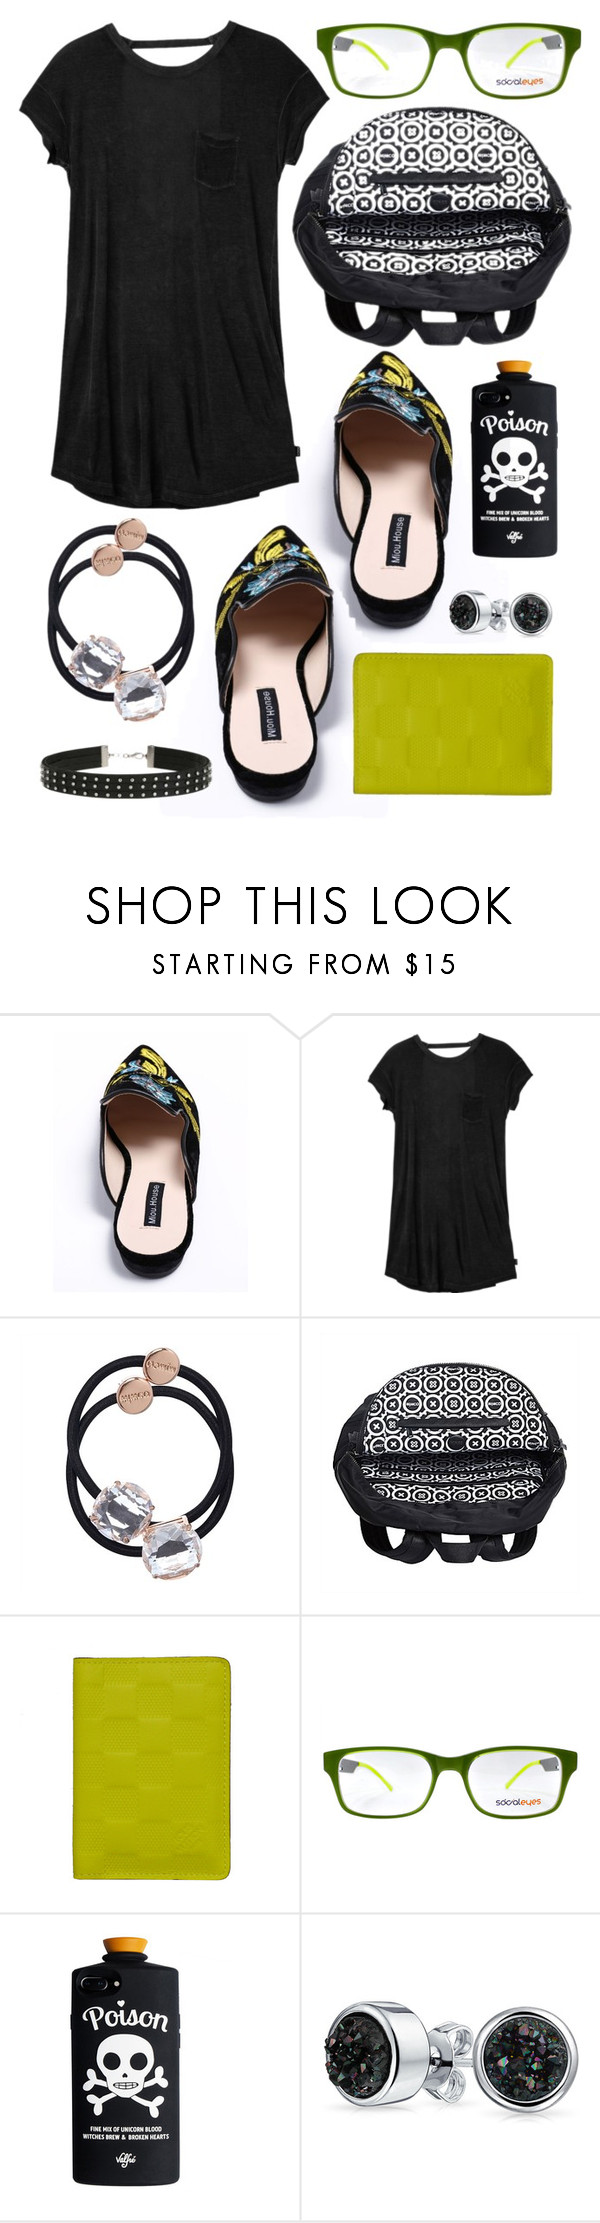 """Fern"" by goingdigi on Polyvore featuring RVCA, Louis Vuitton, SocialEyes, Bling Jewelry and Miss Selfridge"